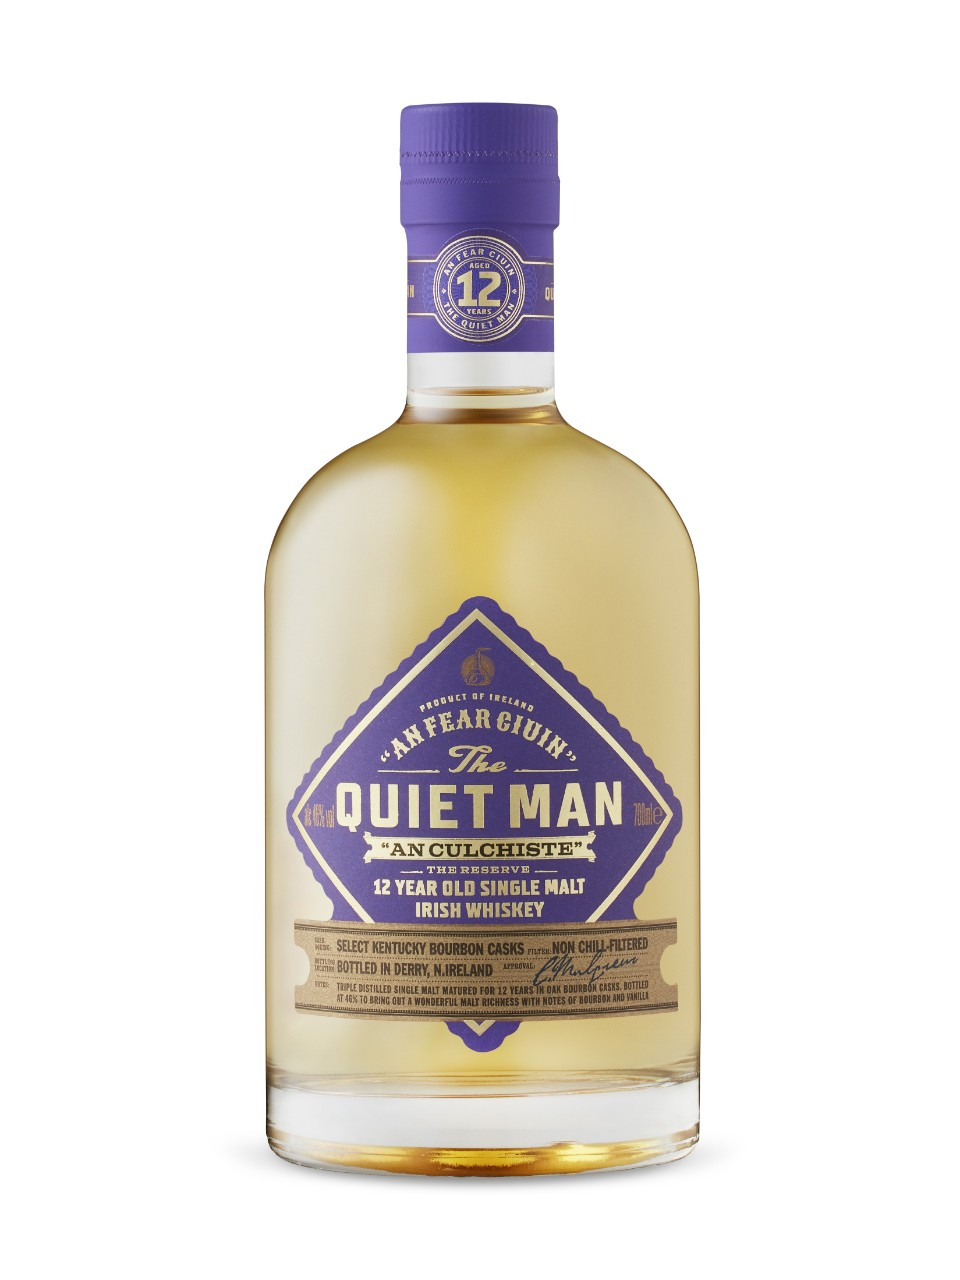 Quiet Man 12 Year Old An Culchiste Reserve Single Malt Irish Whiskey